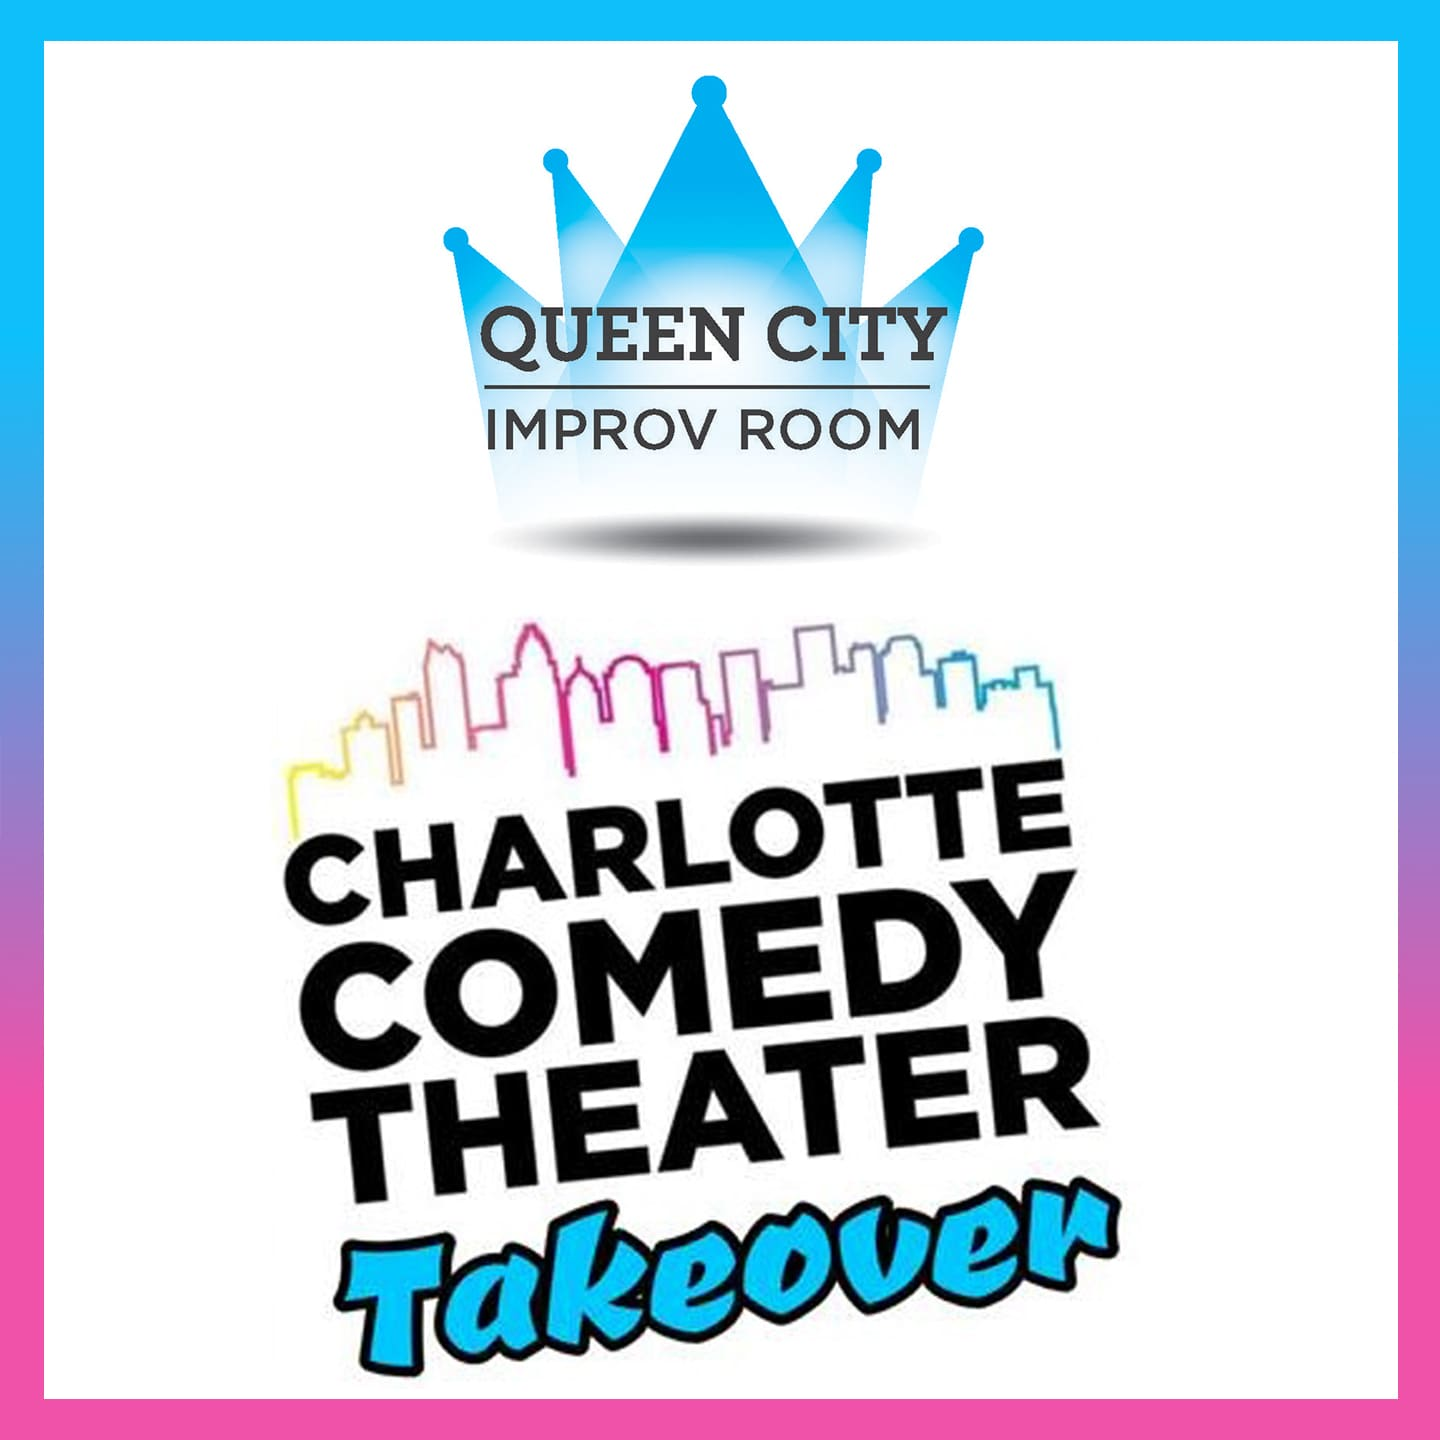 Queen City Improv Room: CCT Takeover with Jonathon Pitts